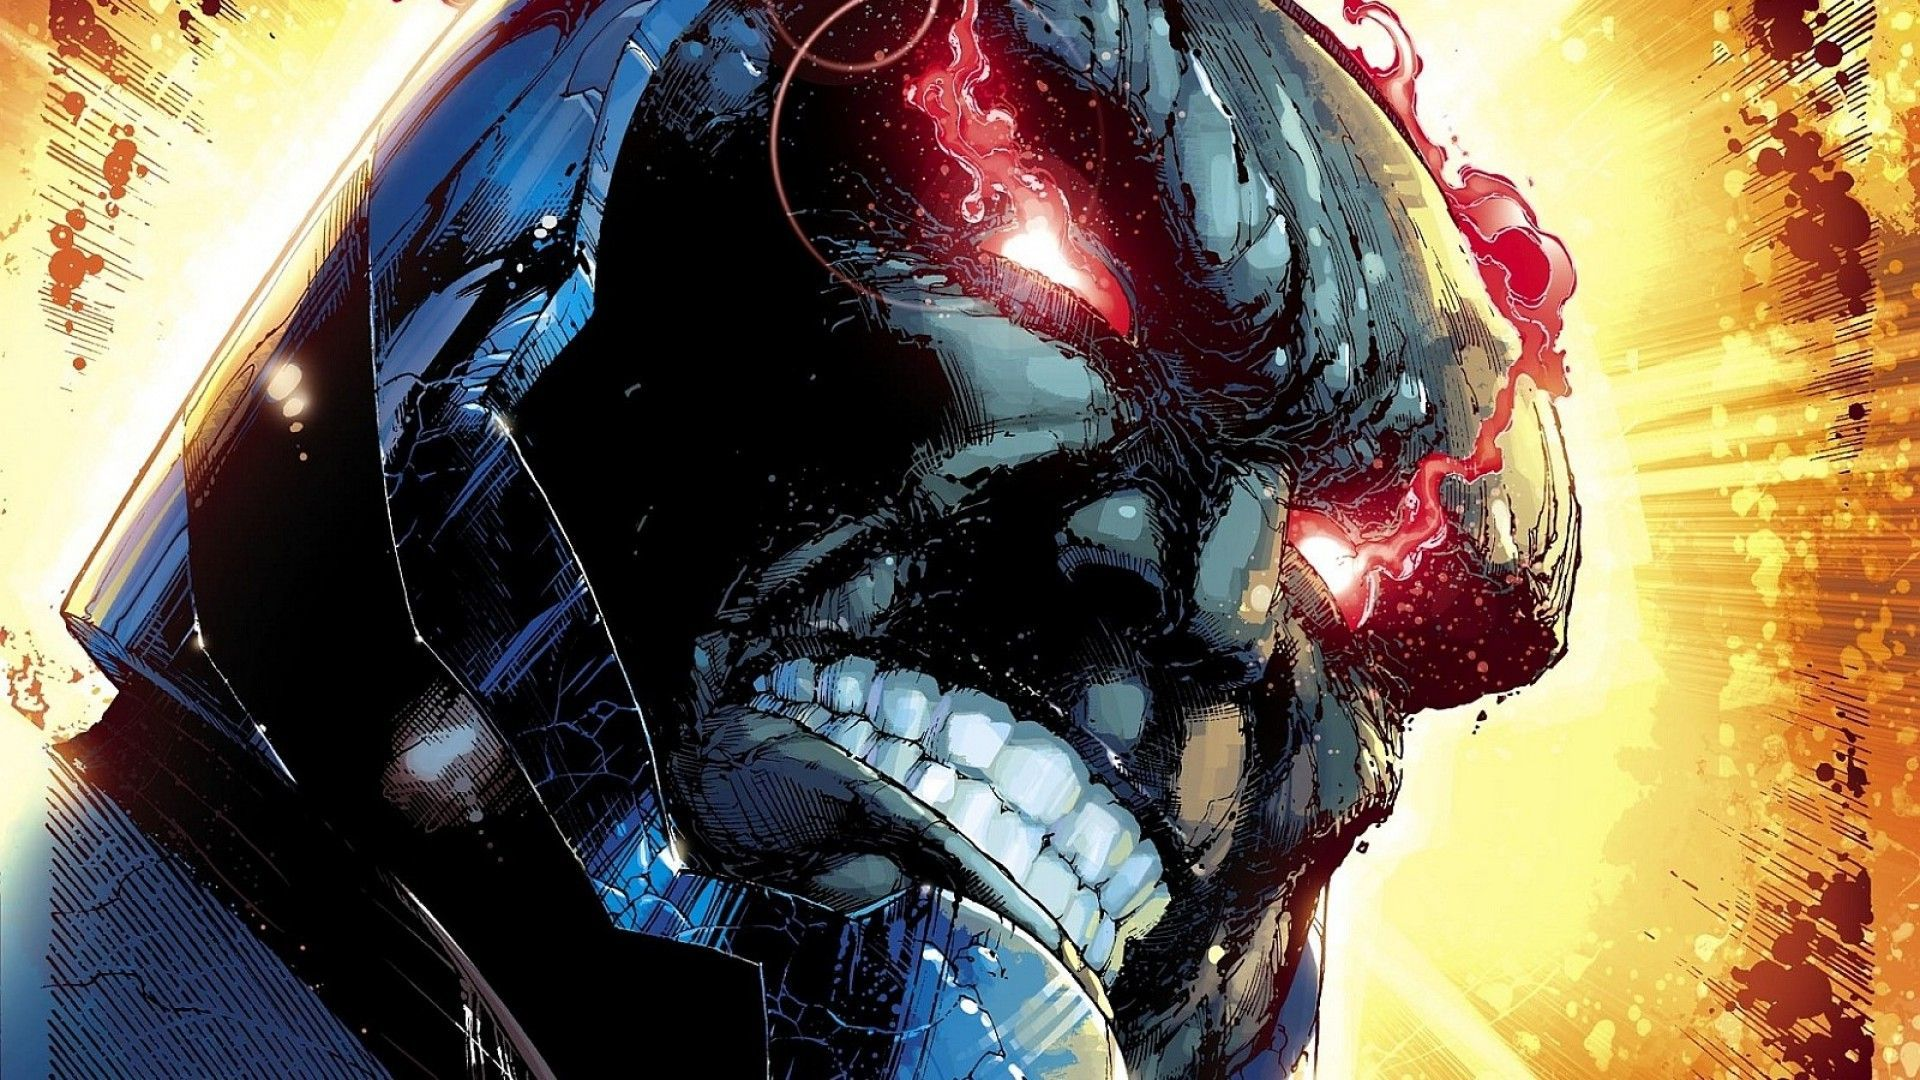 28 Darkseid 4K Ultra HD Backgrounds GsFDcY Graphics 1920x1080